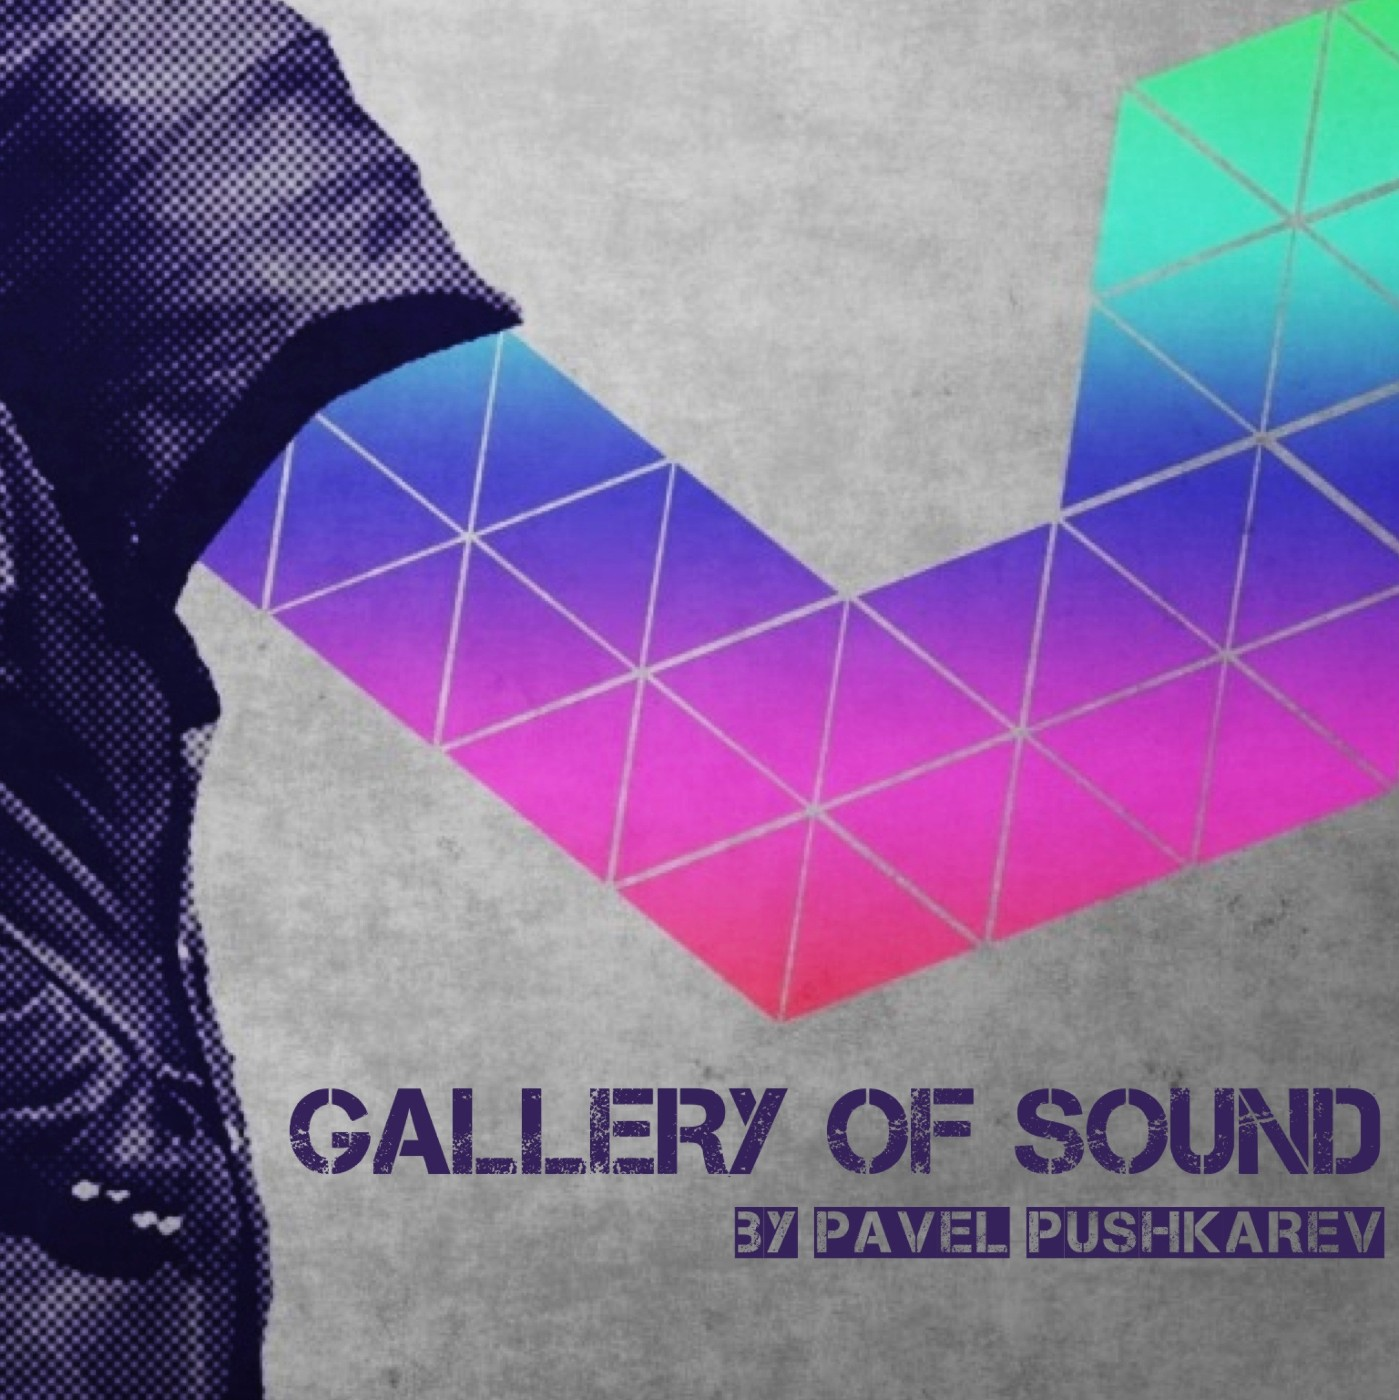 GALLERY OF SOUND